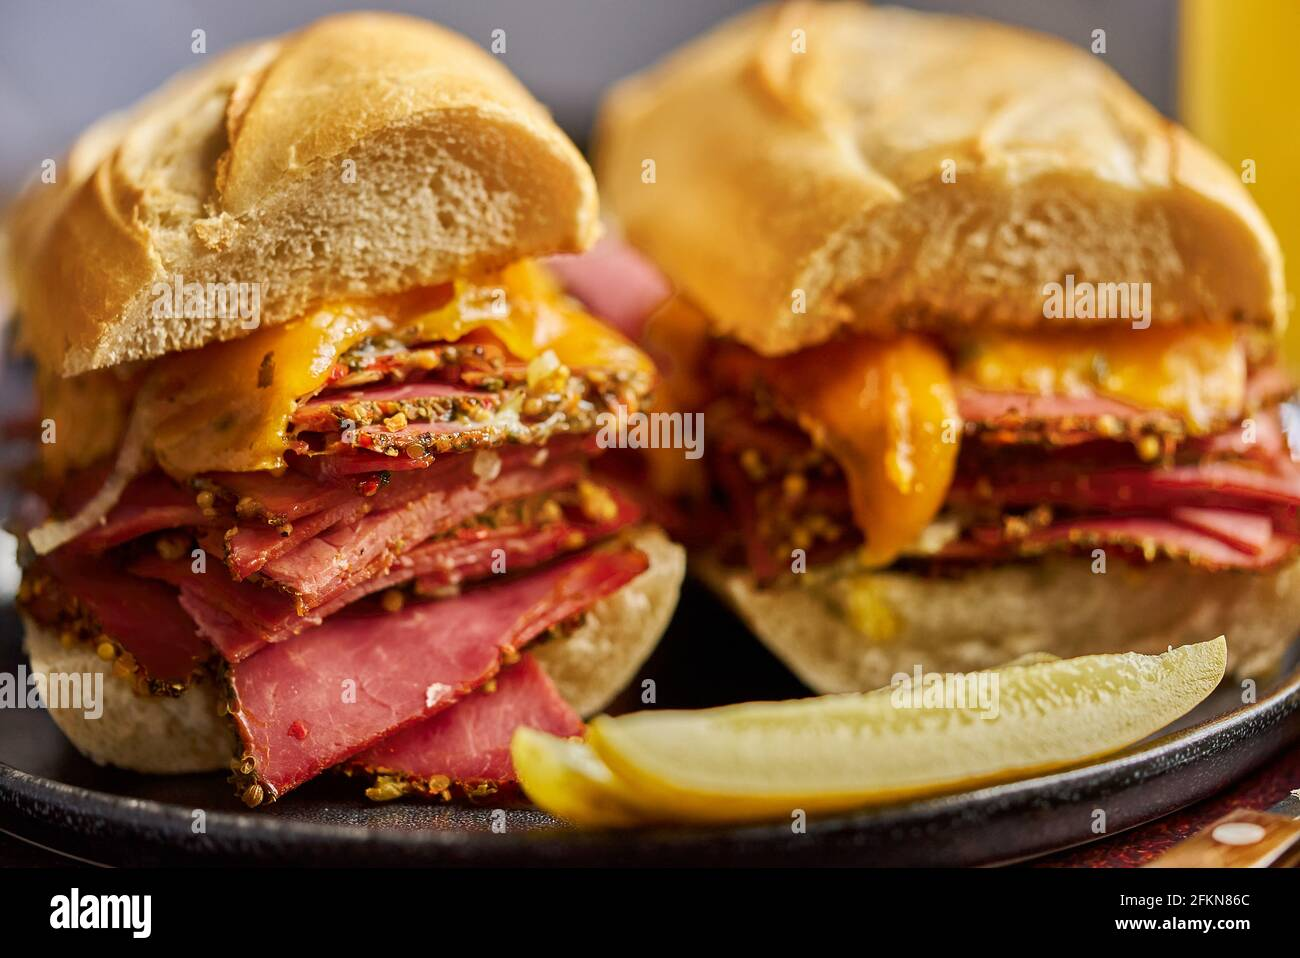 Delicious pastrami meat sandwiches served with glass of beer, pickles, potato chips and sides. Stock Photo